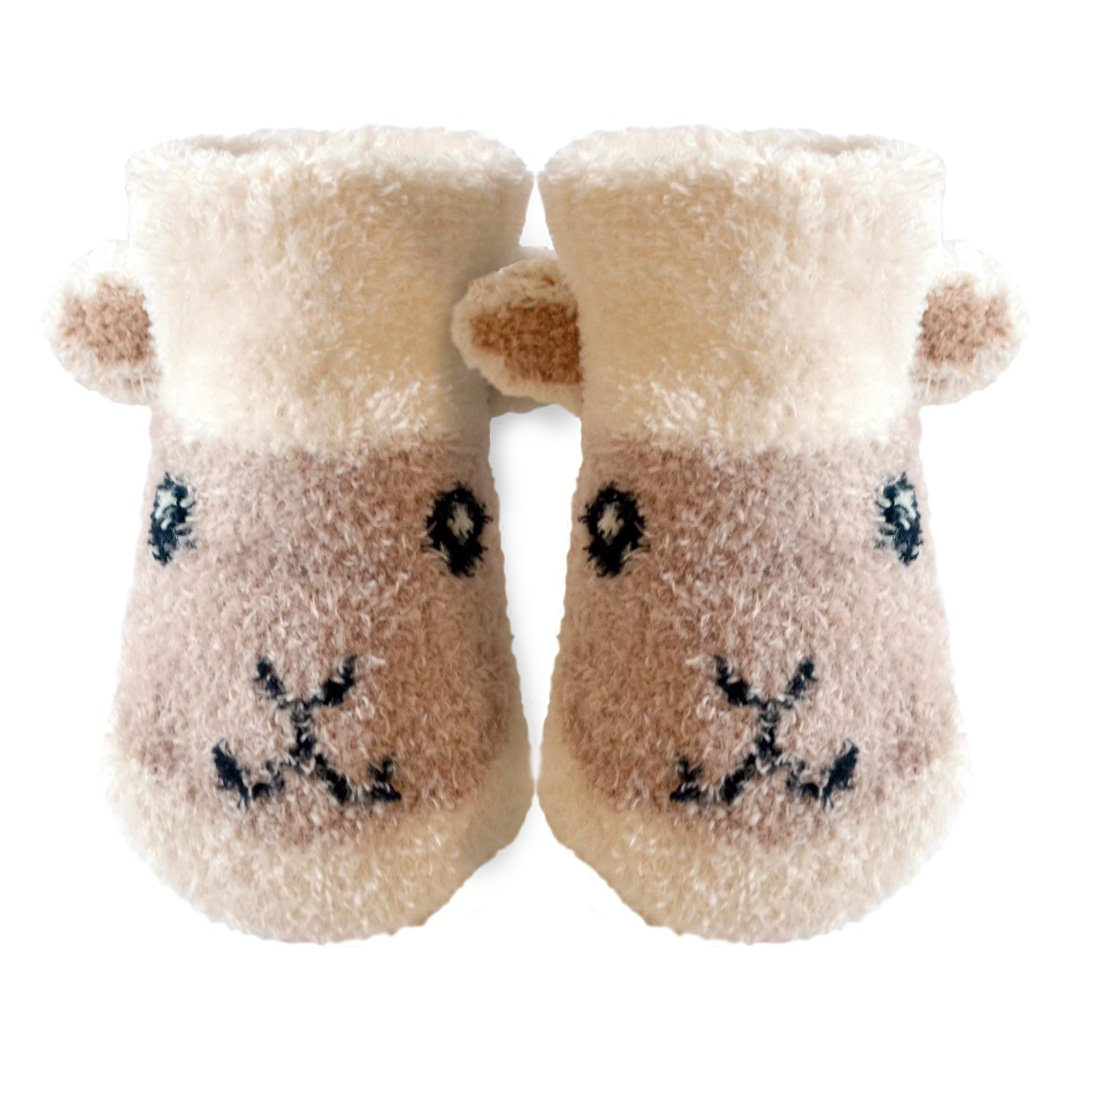 Cream Colour Patrick Francis Ireland Kids Woolly Sheep Face Booties